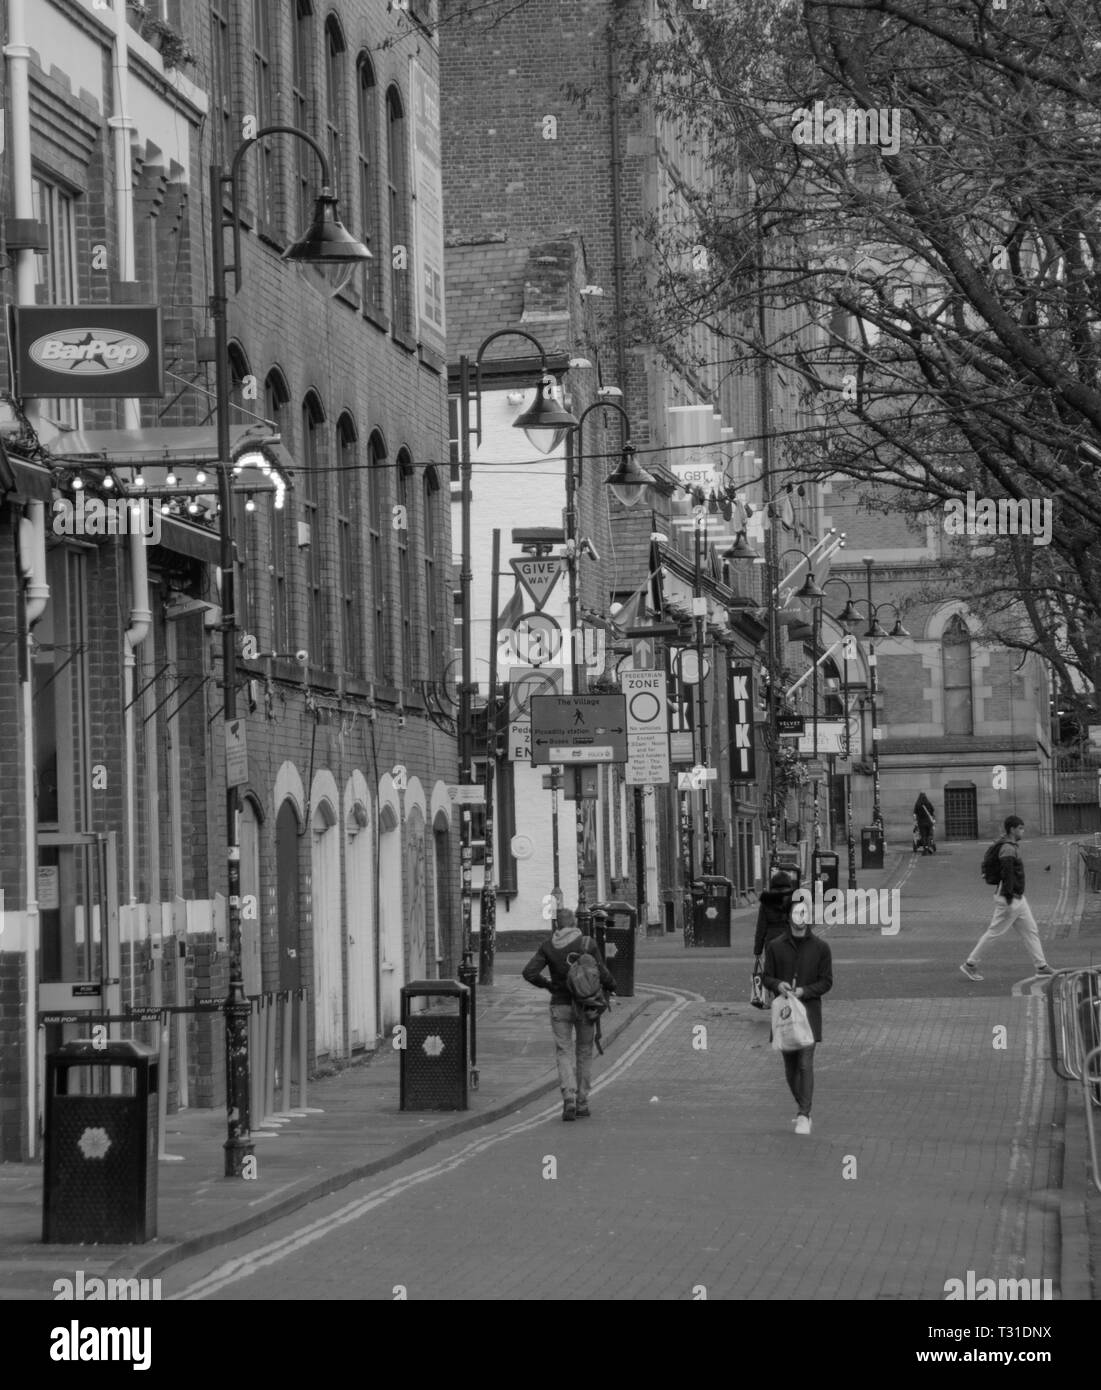 Gay Village, Canal Street, Manchester City Centre, England, UK. - Stock Image